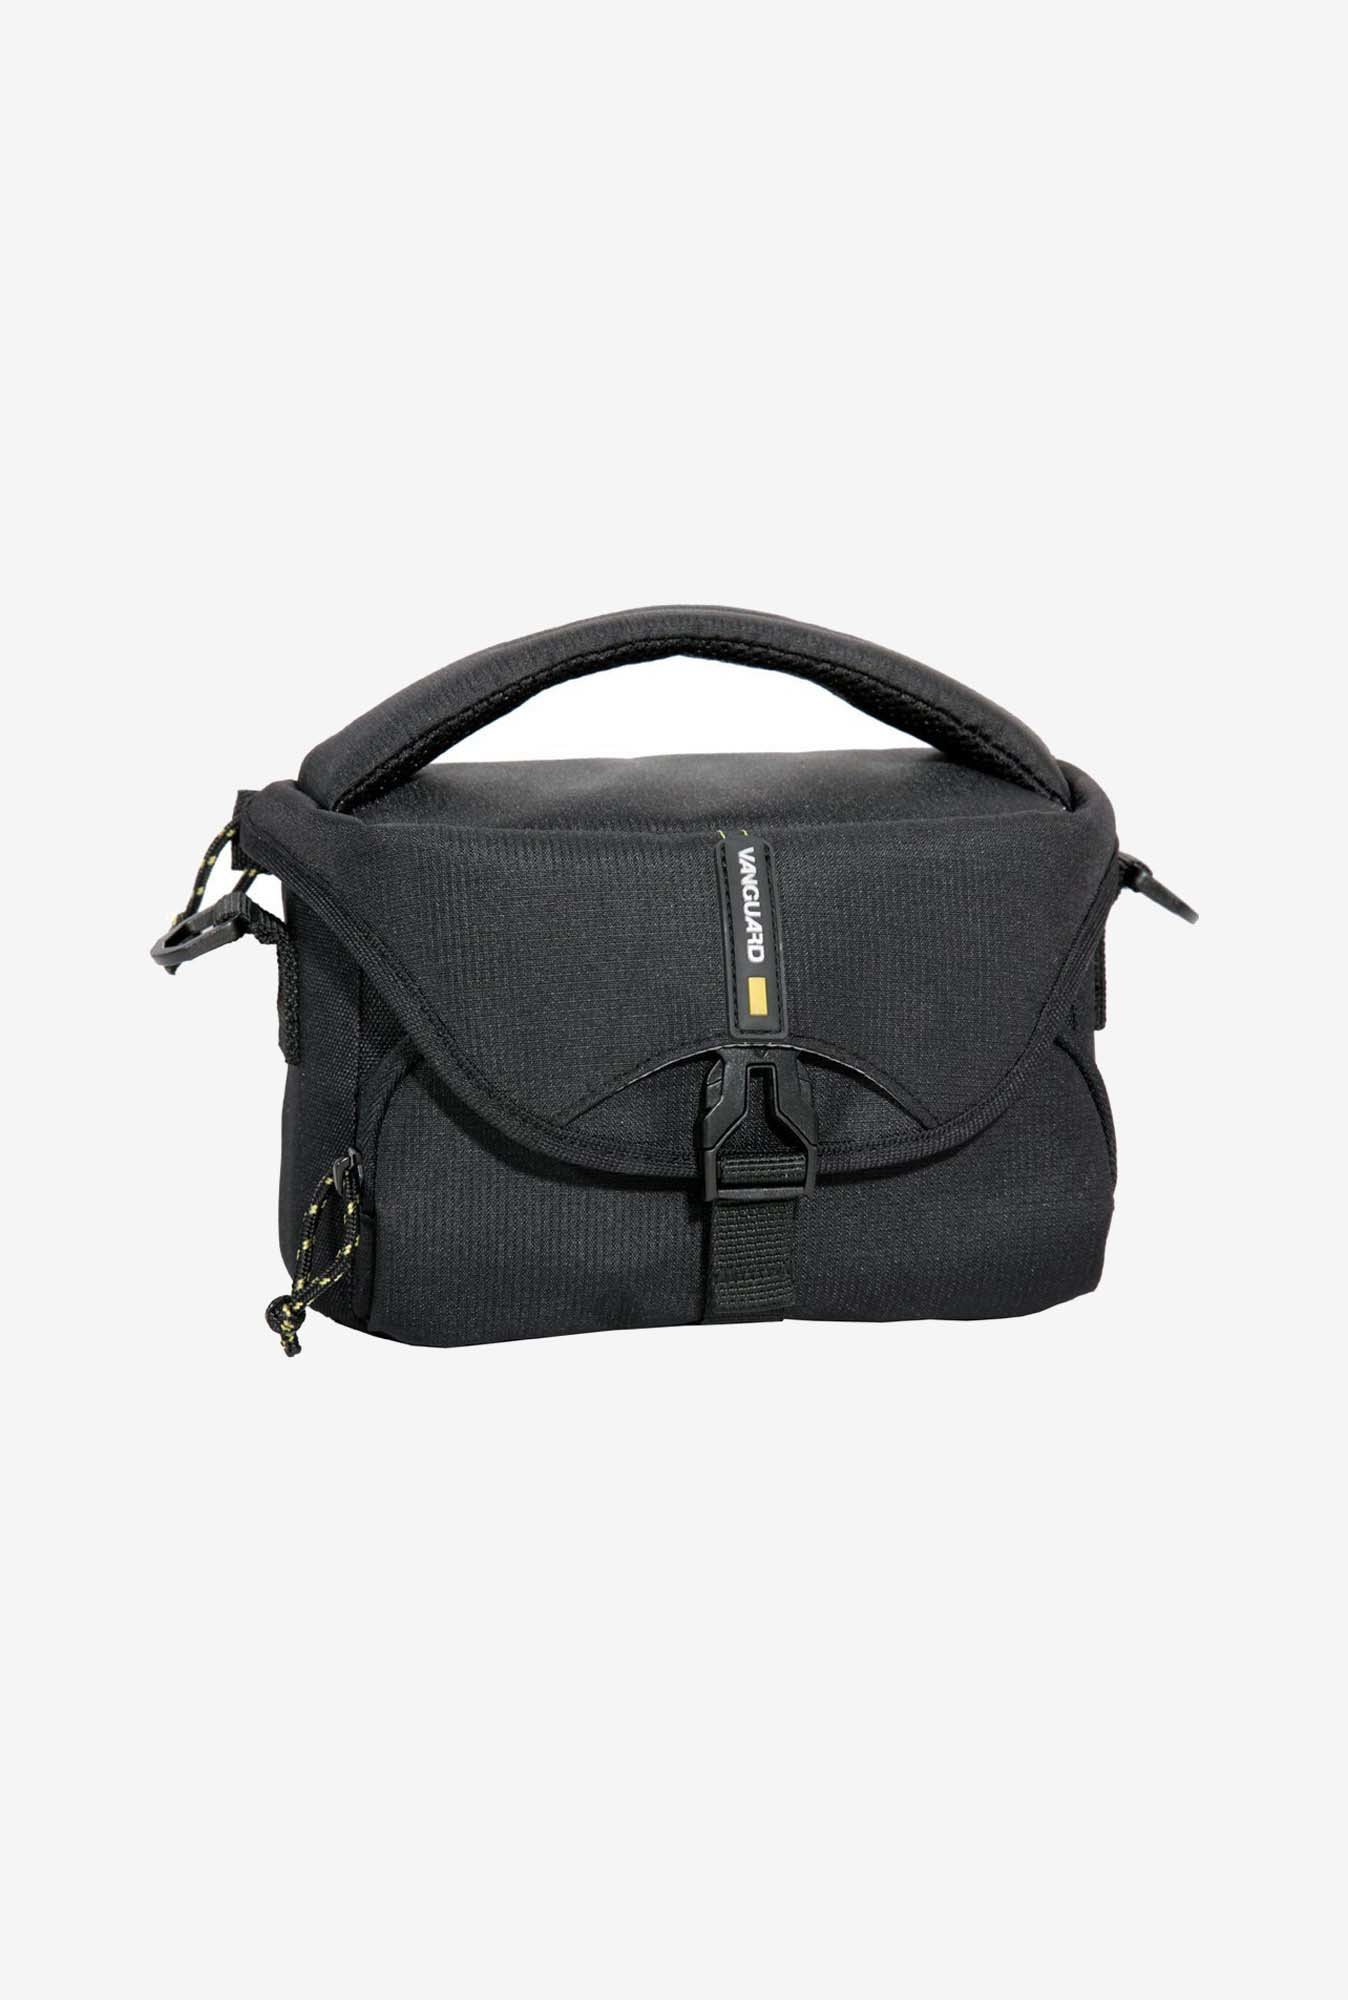 Vanguard BIIN 17 Camera Bag (Black)